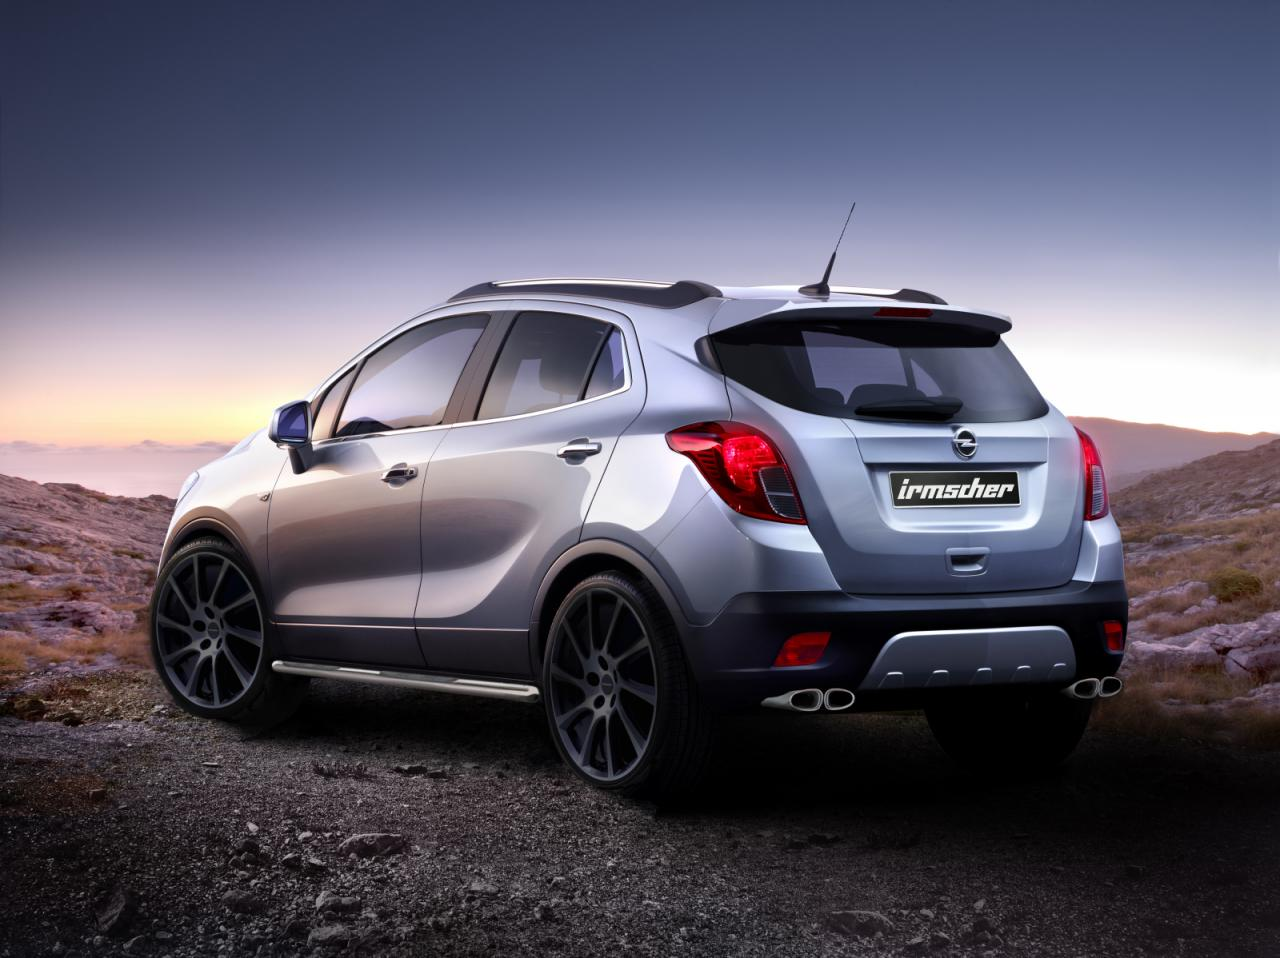 Irmscher tunes the new Opel Mokka SUV